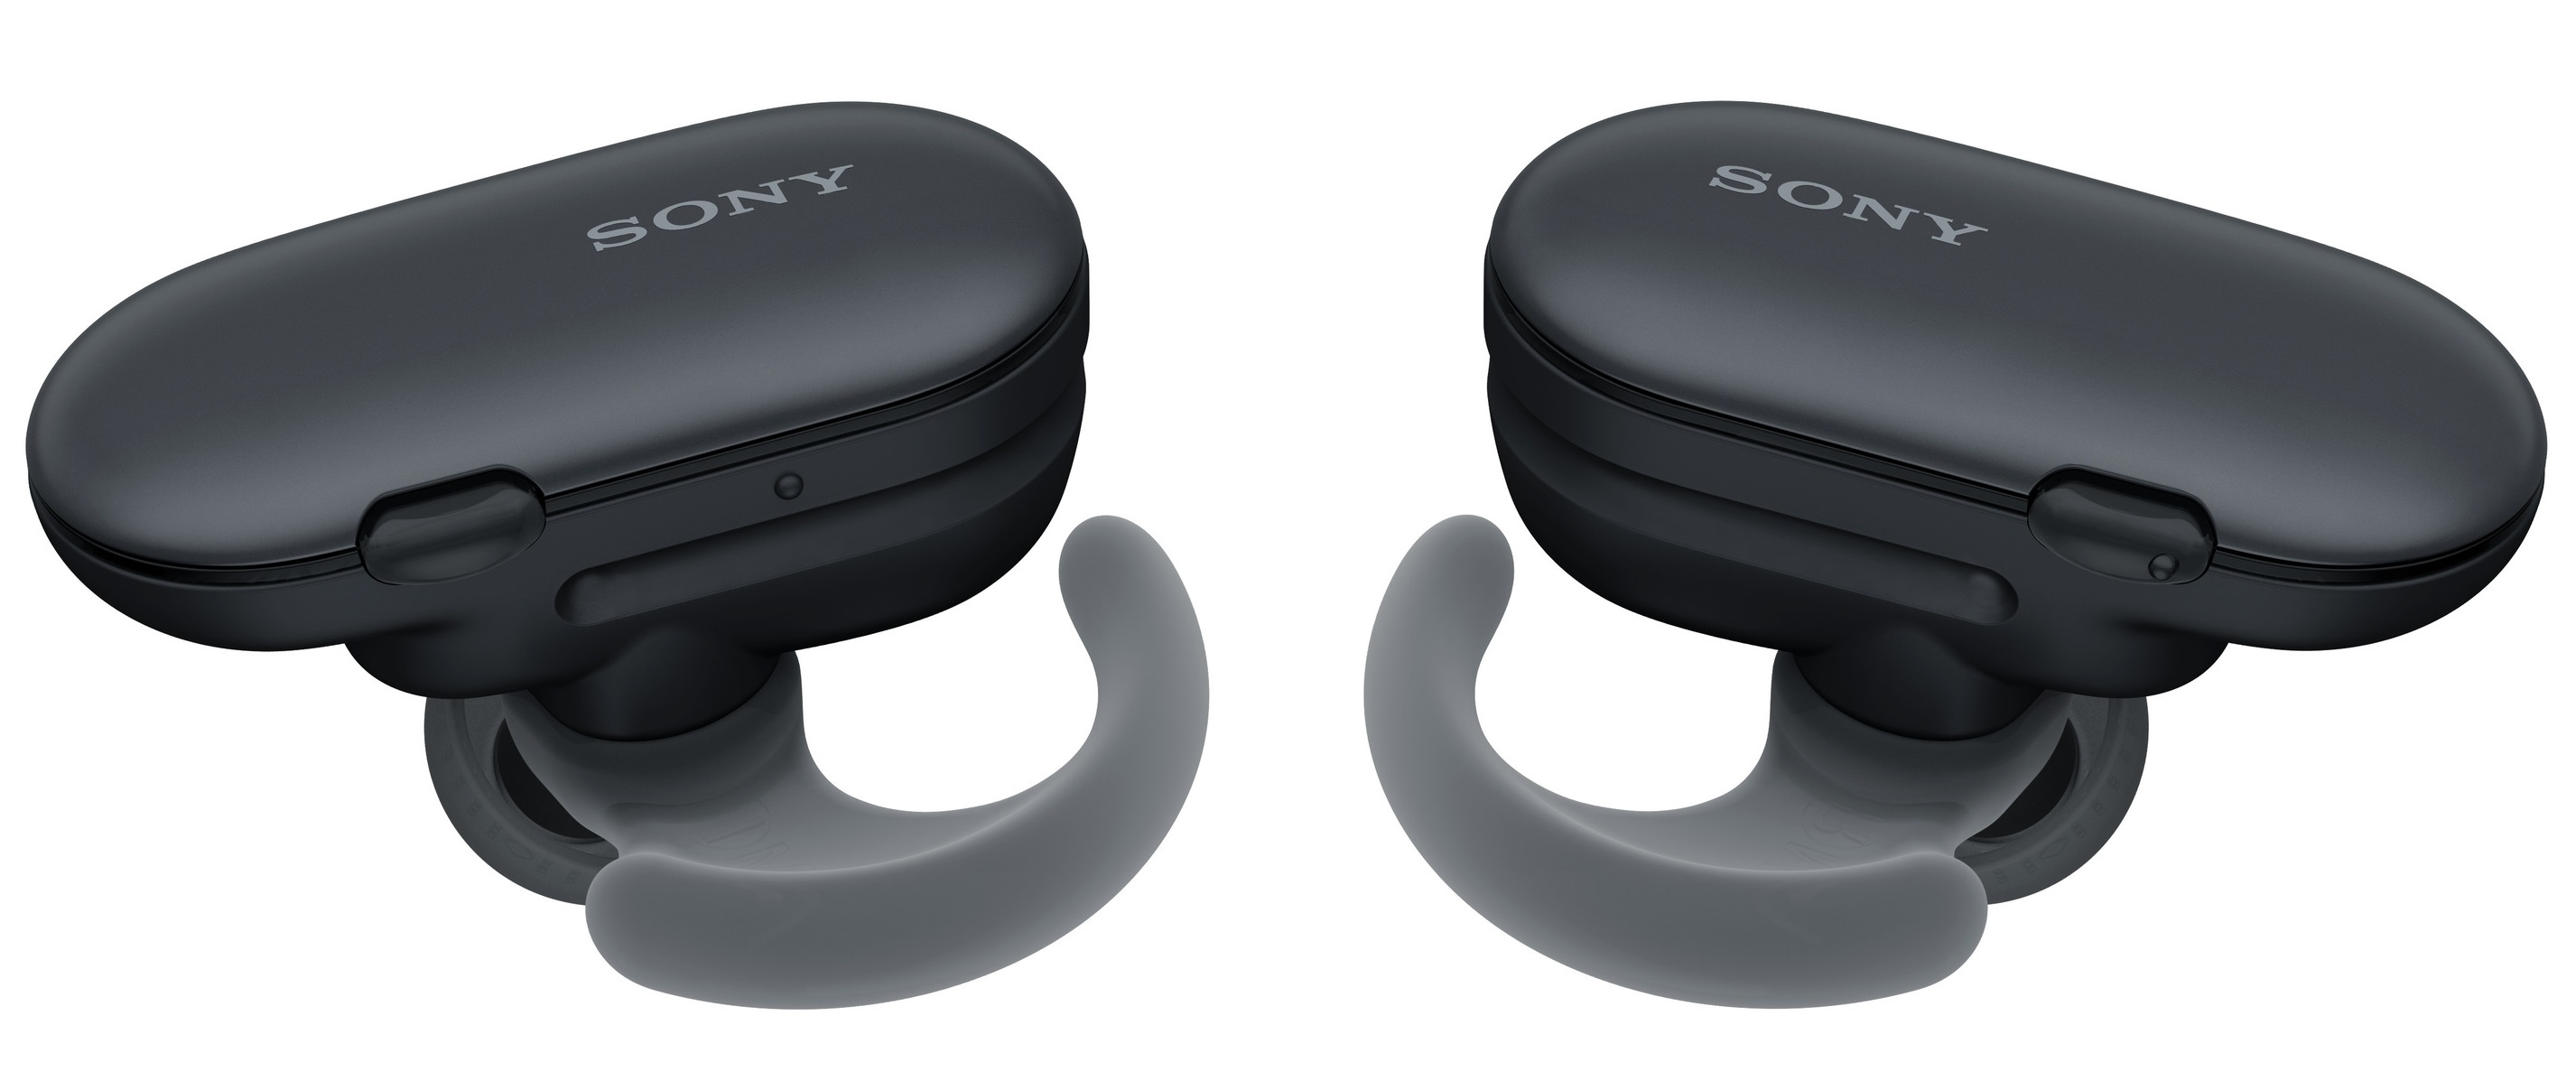 sony wf-sp900, Sony WF-SP900 Waterproof Wireless Headphones Coming to PH this October!, Gadget Pilipinas